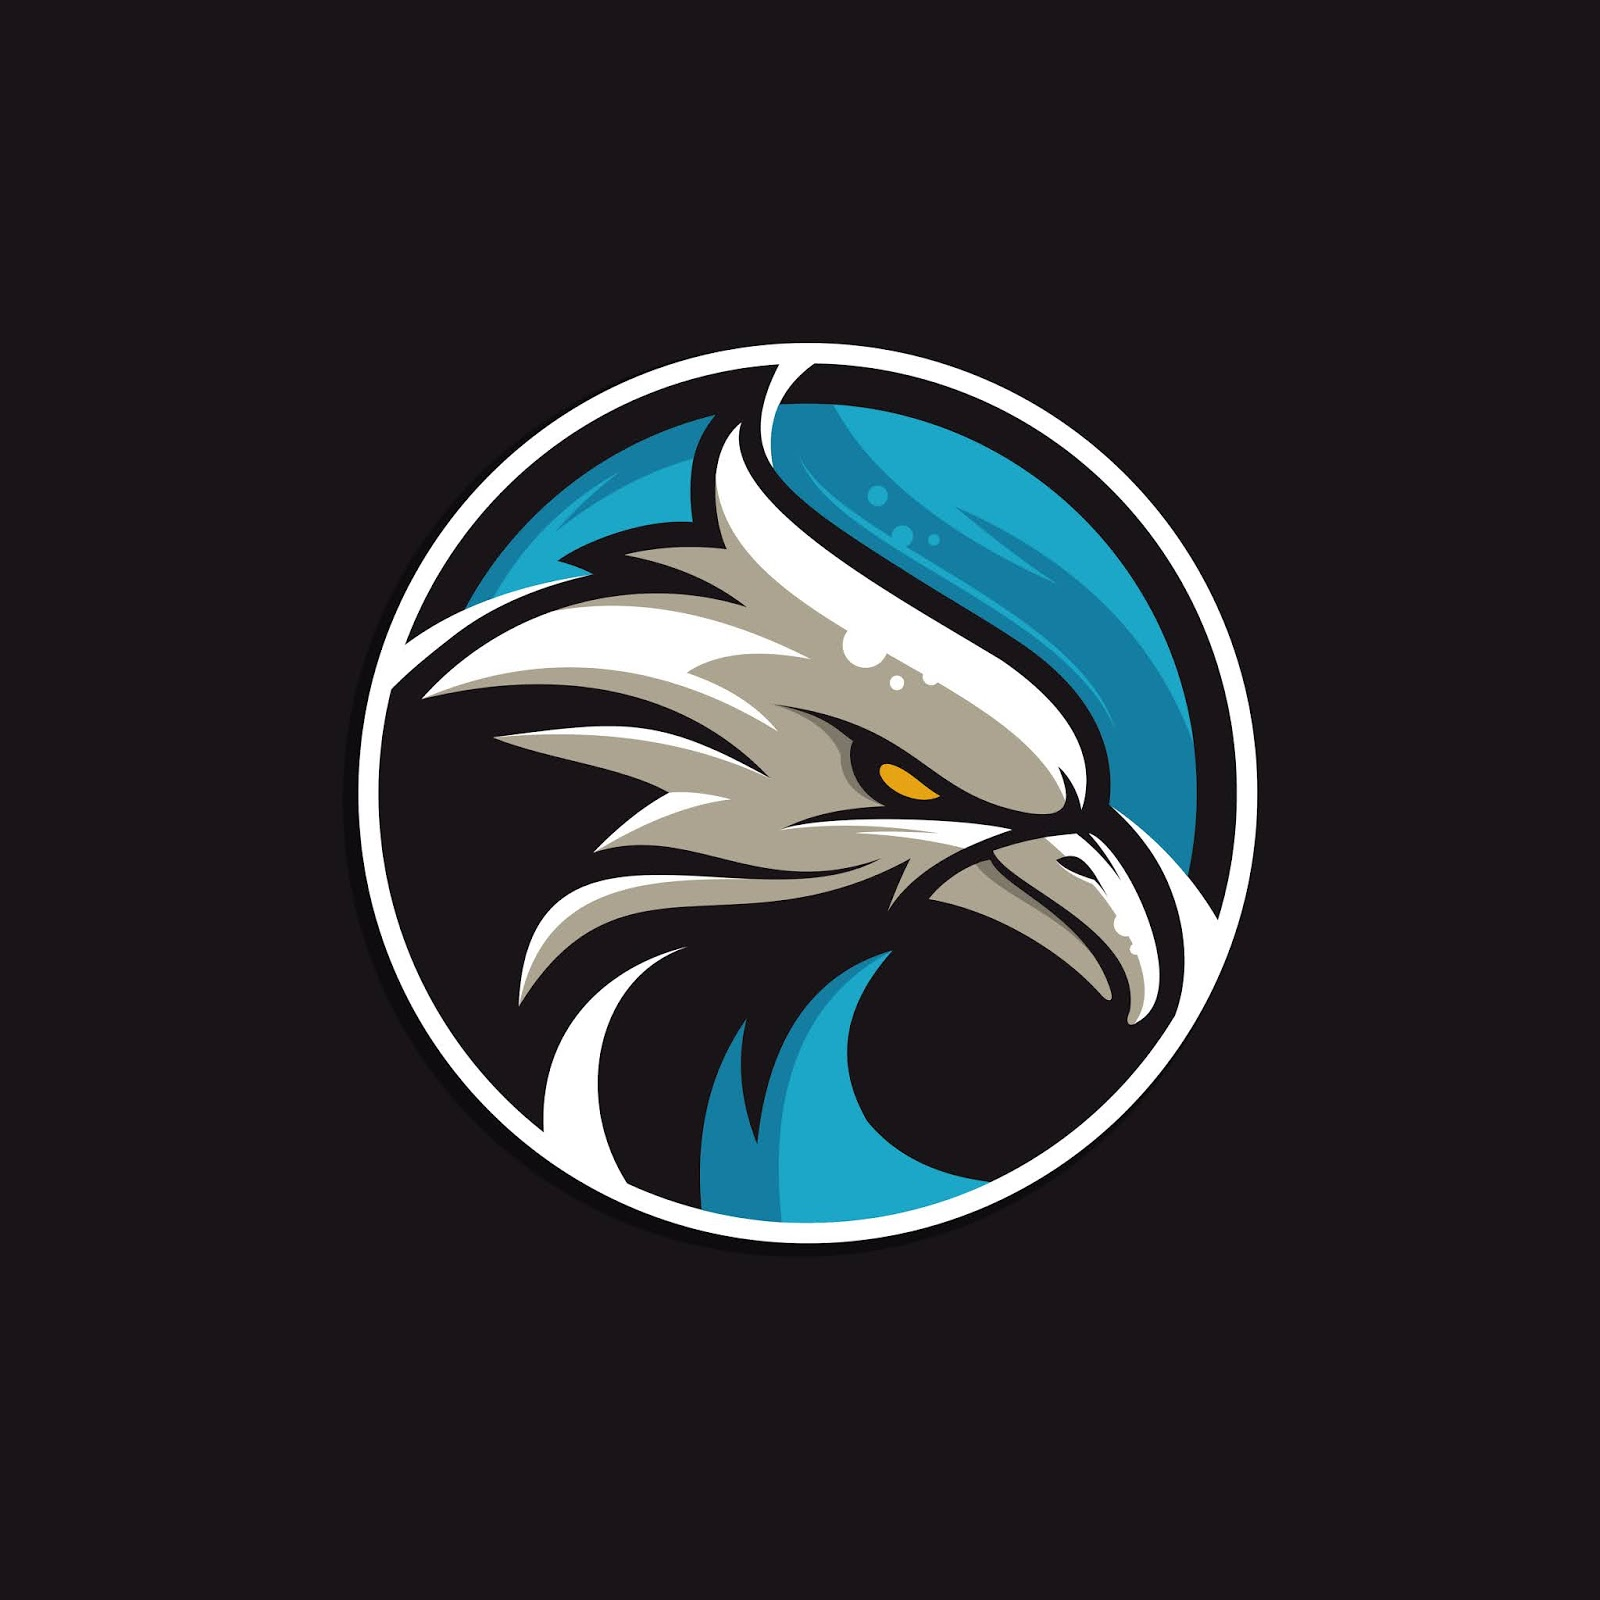 Eagle Color Full Gaze Logo Free Download Vector CDR, AI, EPS and PNG Formats